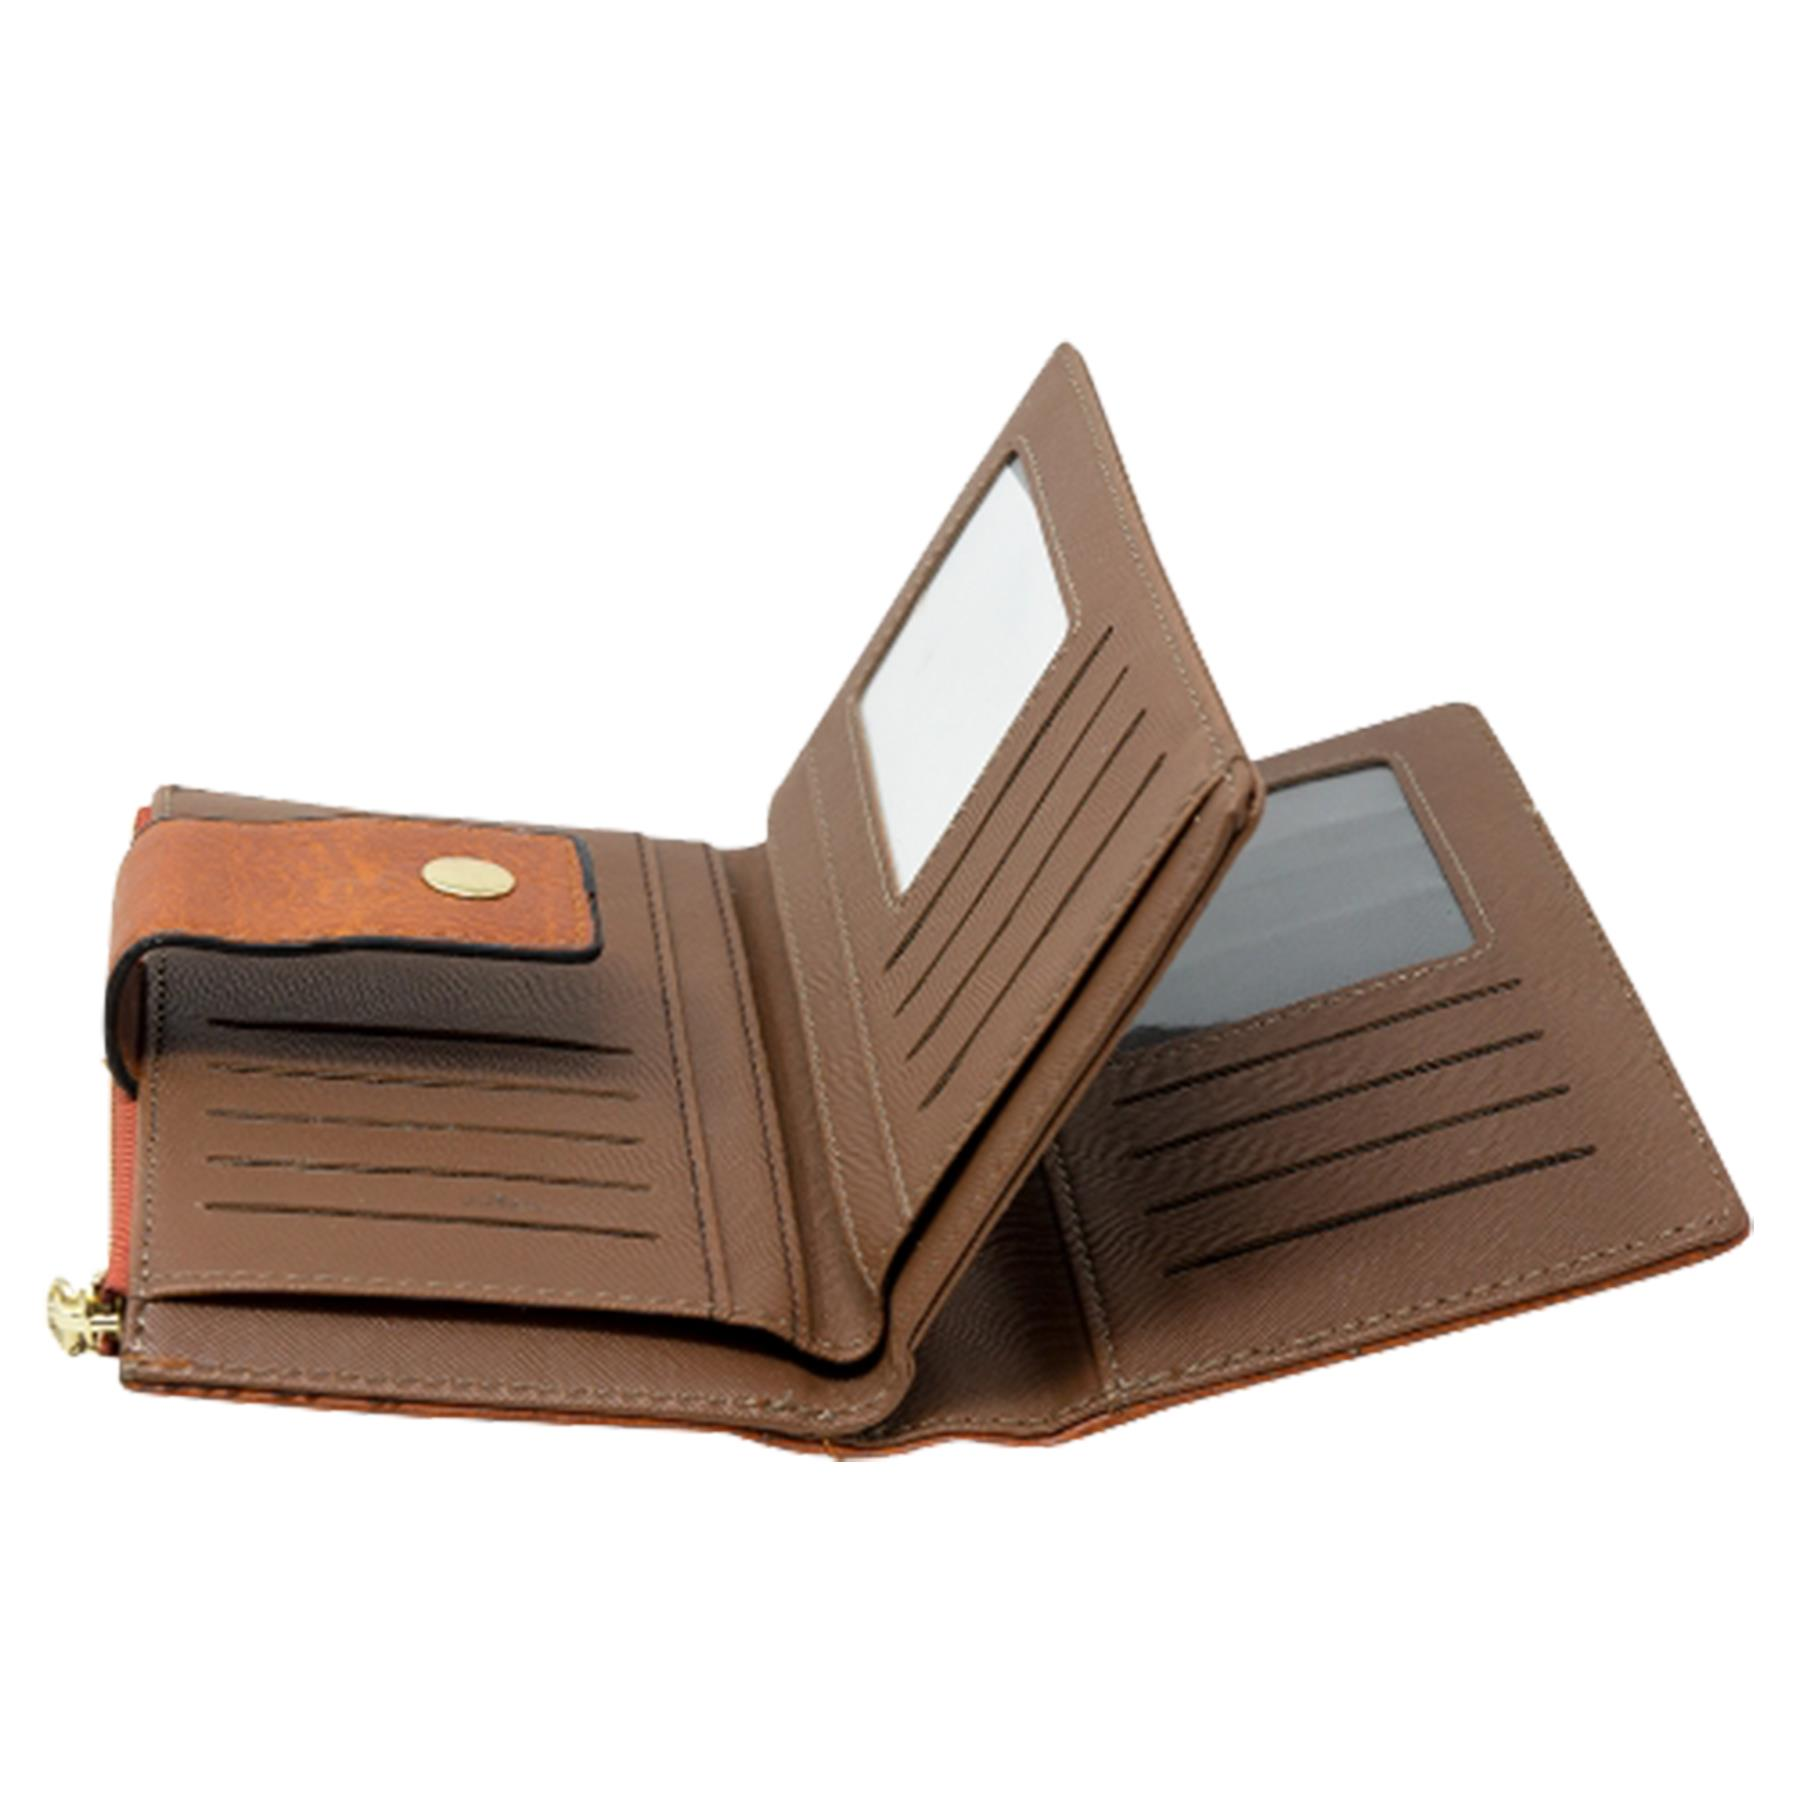 New-Soft-Plain-Synthetic-Leather-Card-Organiser-Ladies-Long-Purse thumbnail 13